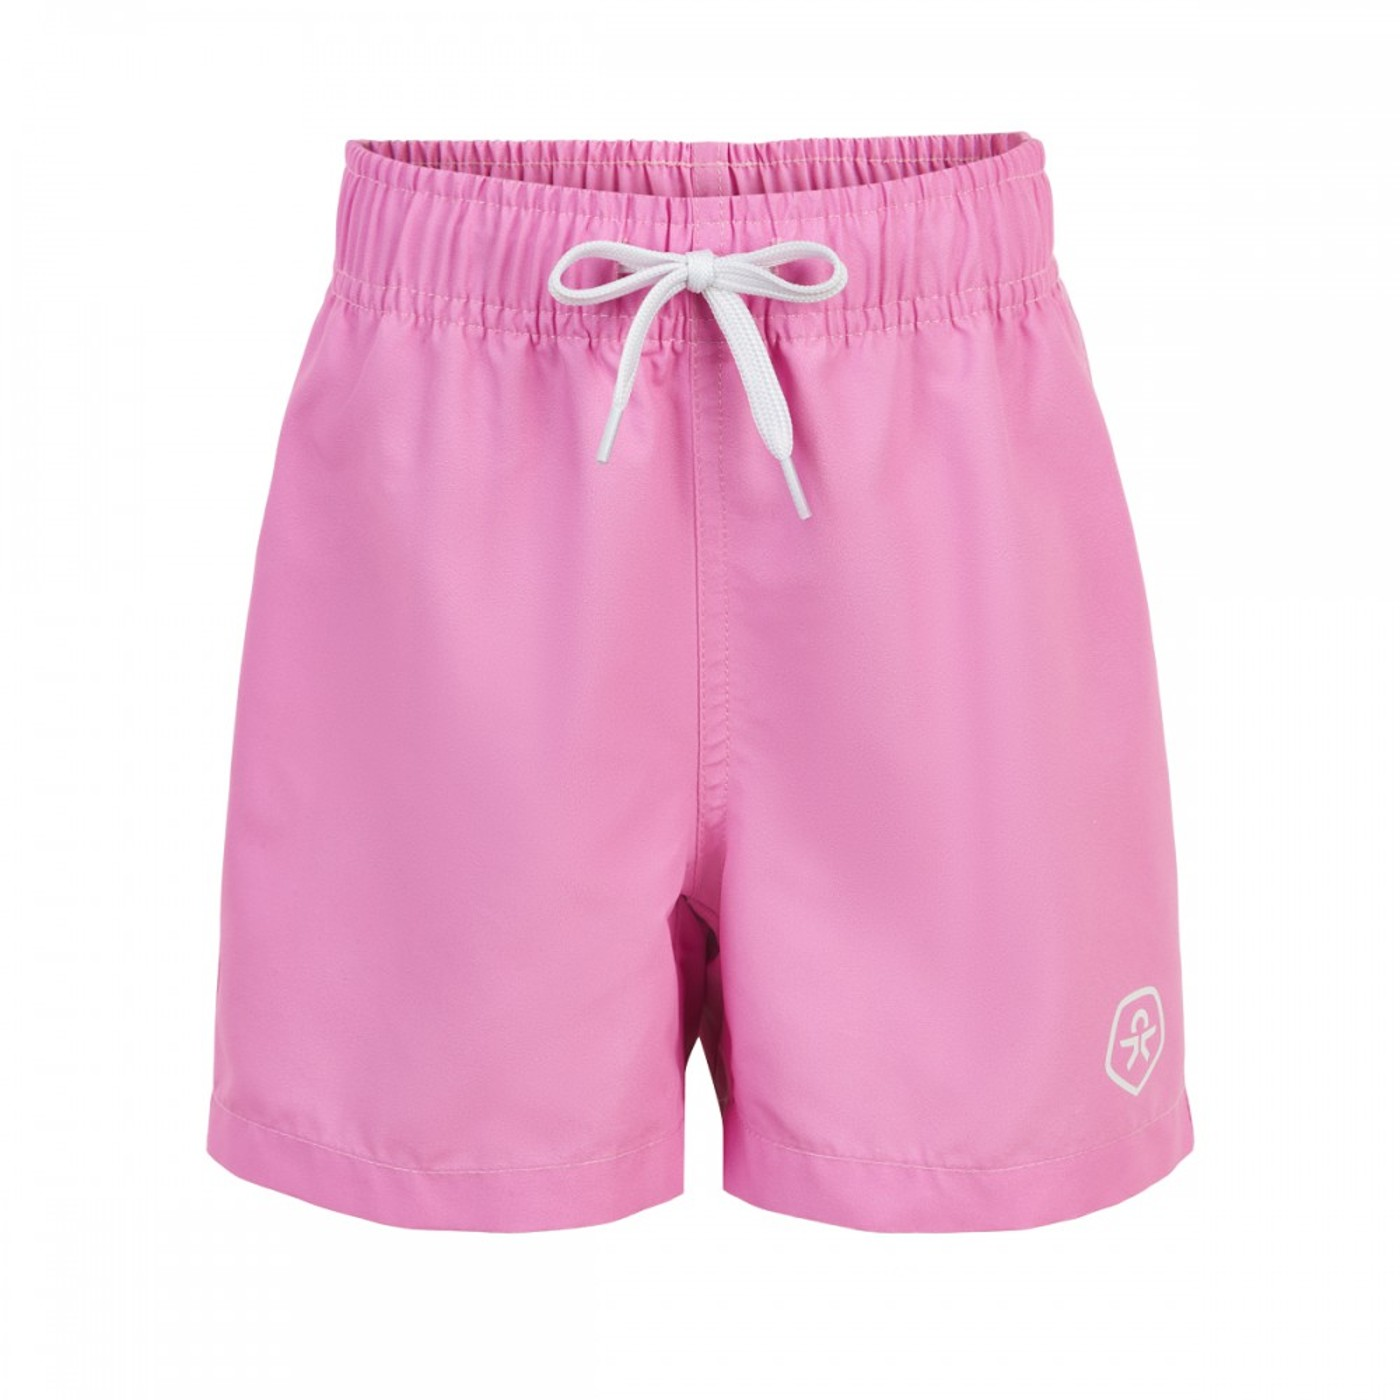 COLOR Bungo beach shorts - Kinder